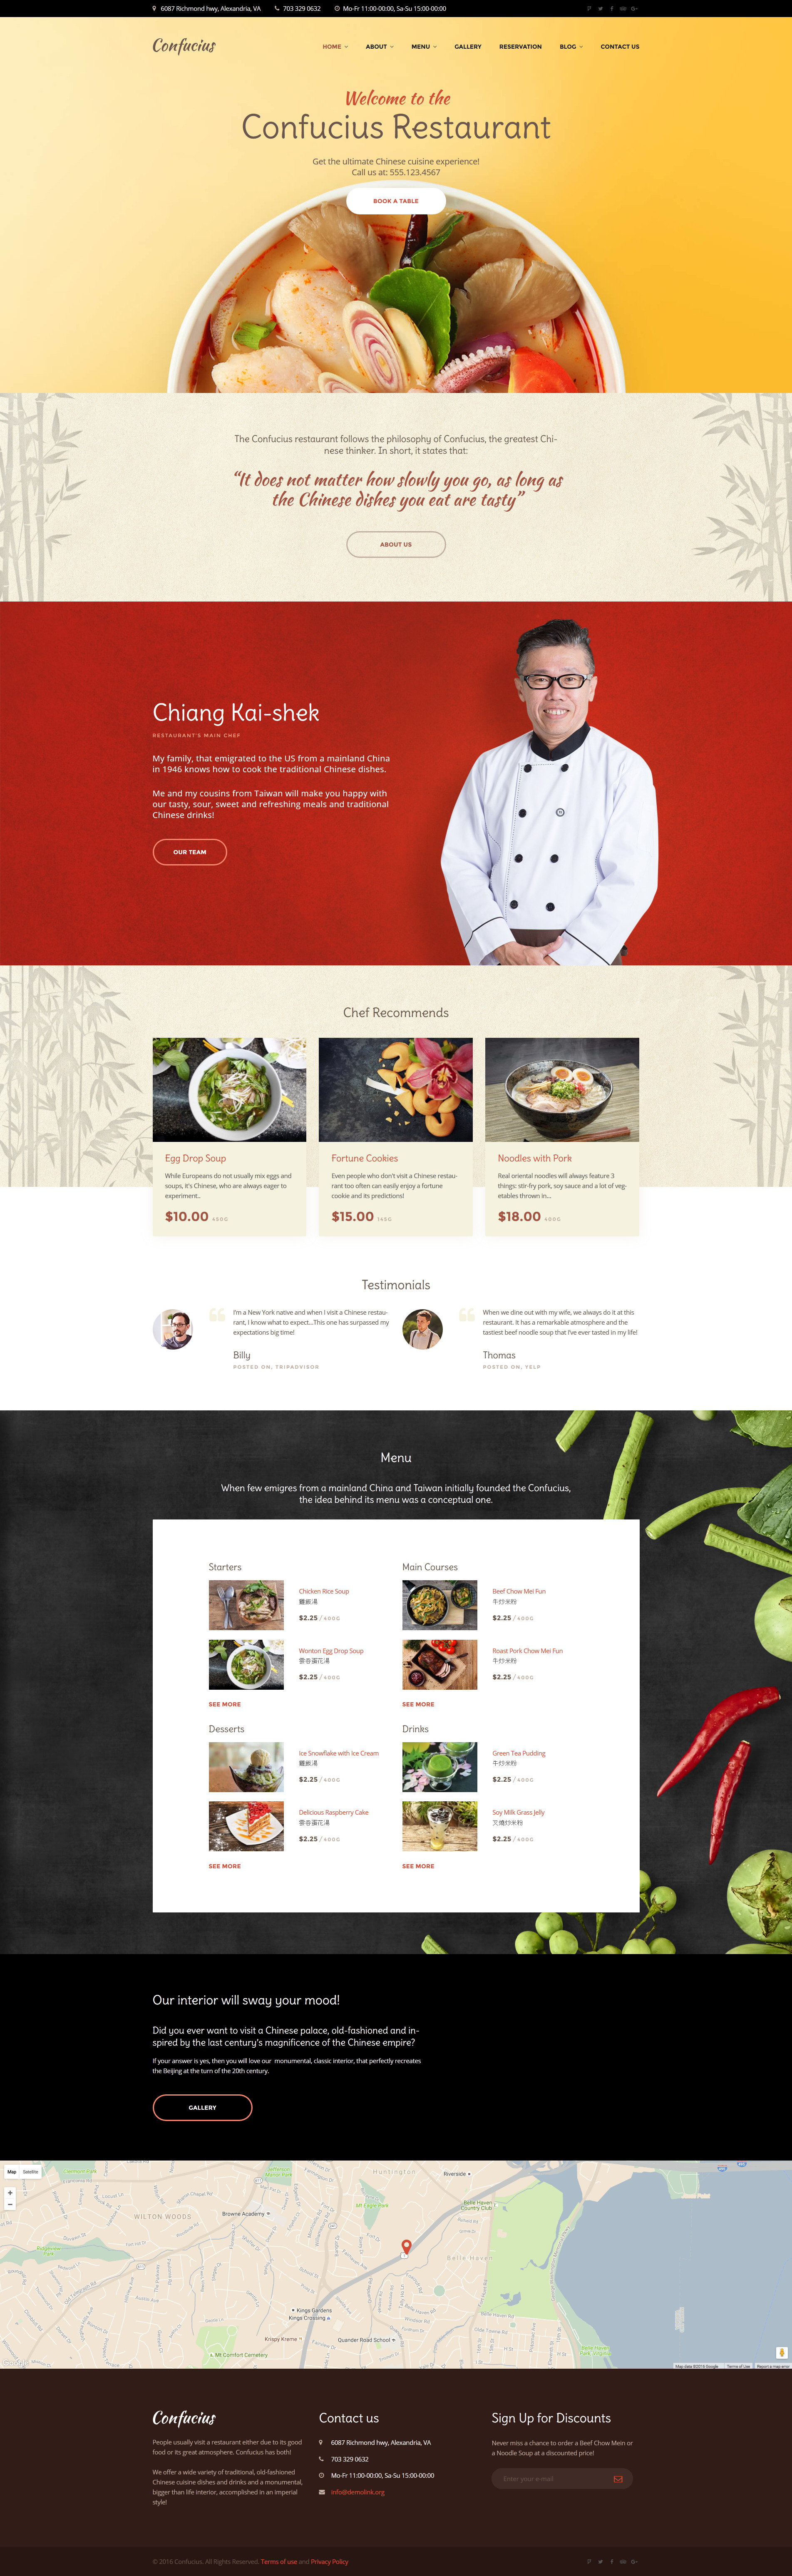 Confucius Chinese Restaurant Responsive WordPress Theme Buy Website Template For 75 Id 58926